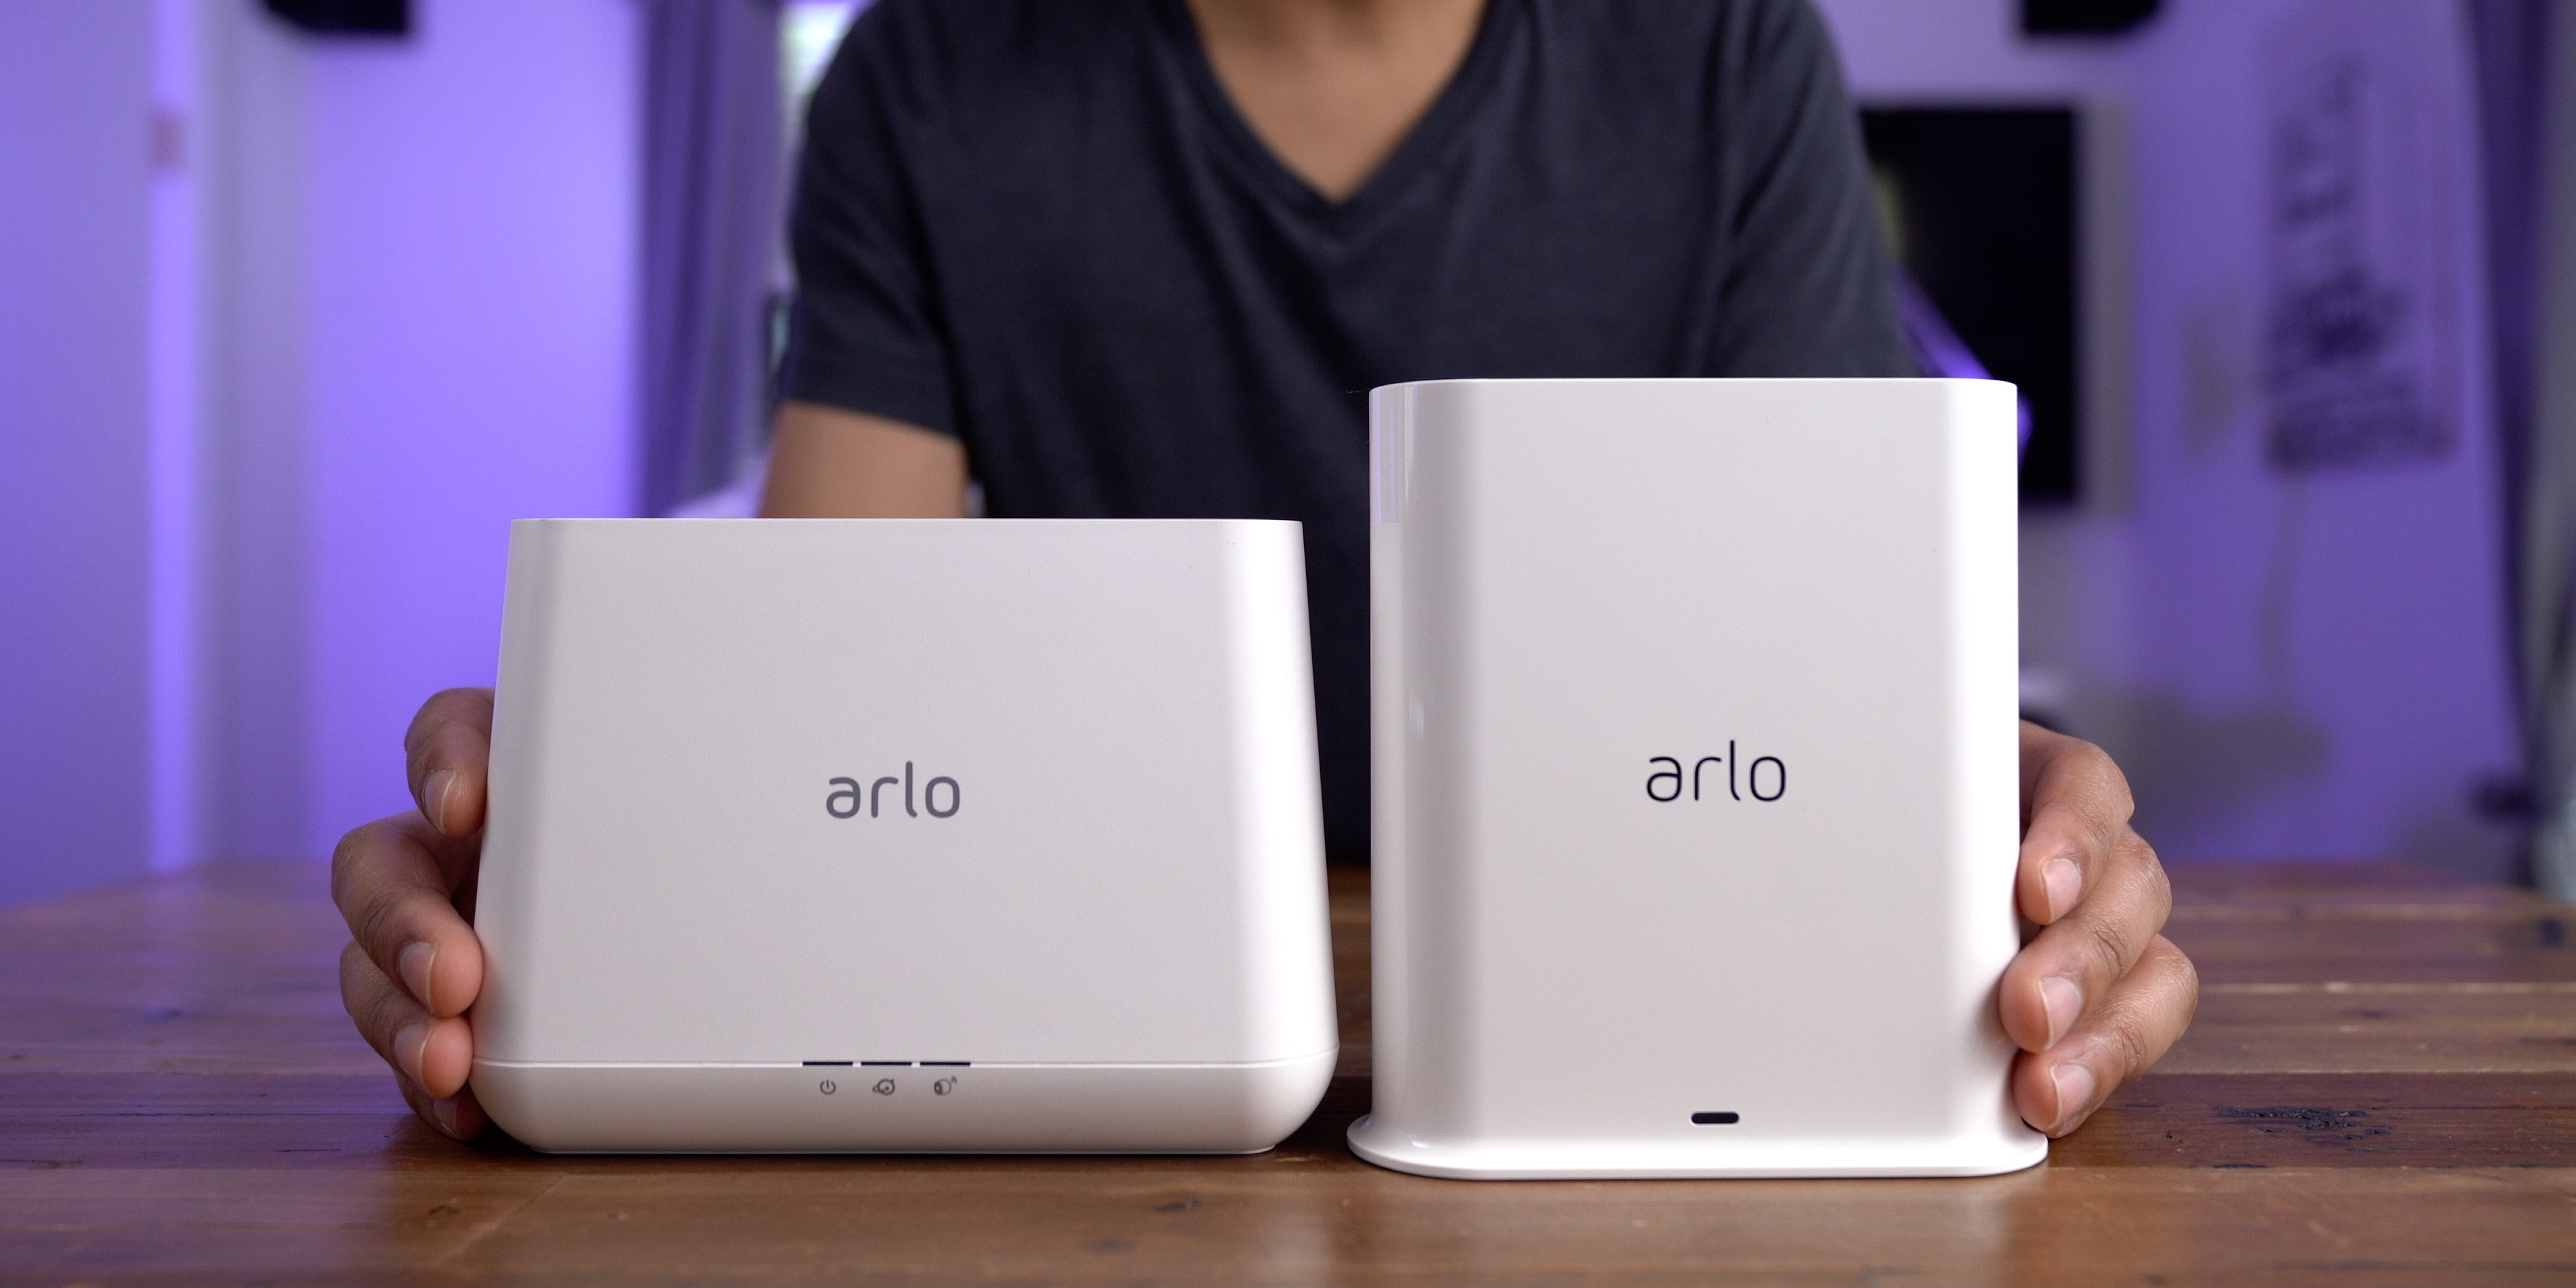 Arlo Pro 2 Smart Hub vs Arlo Ultra Smart Hub